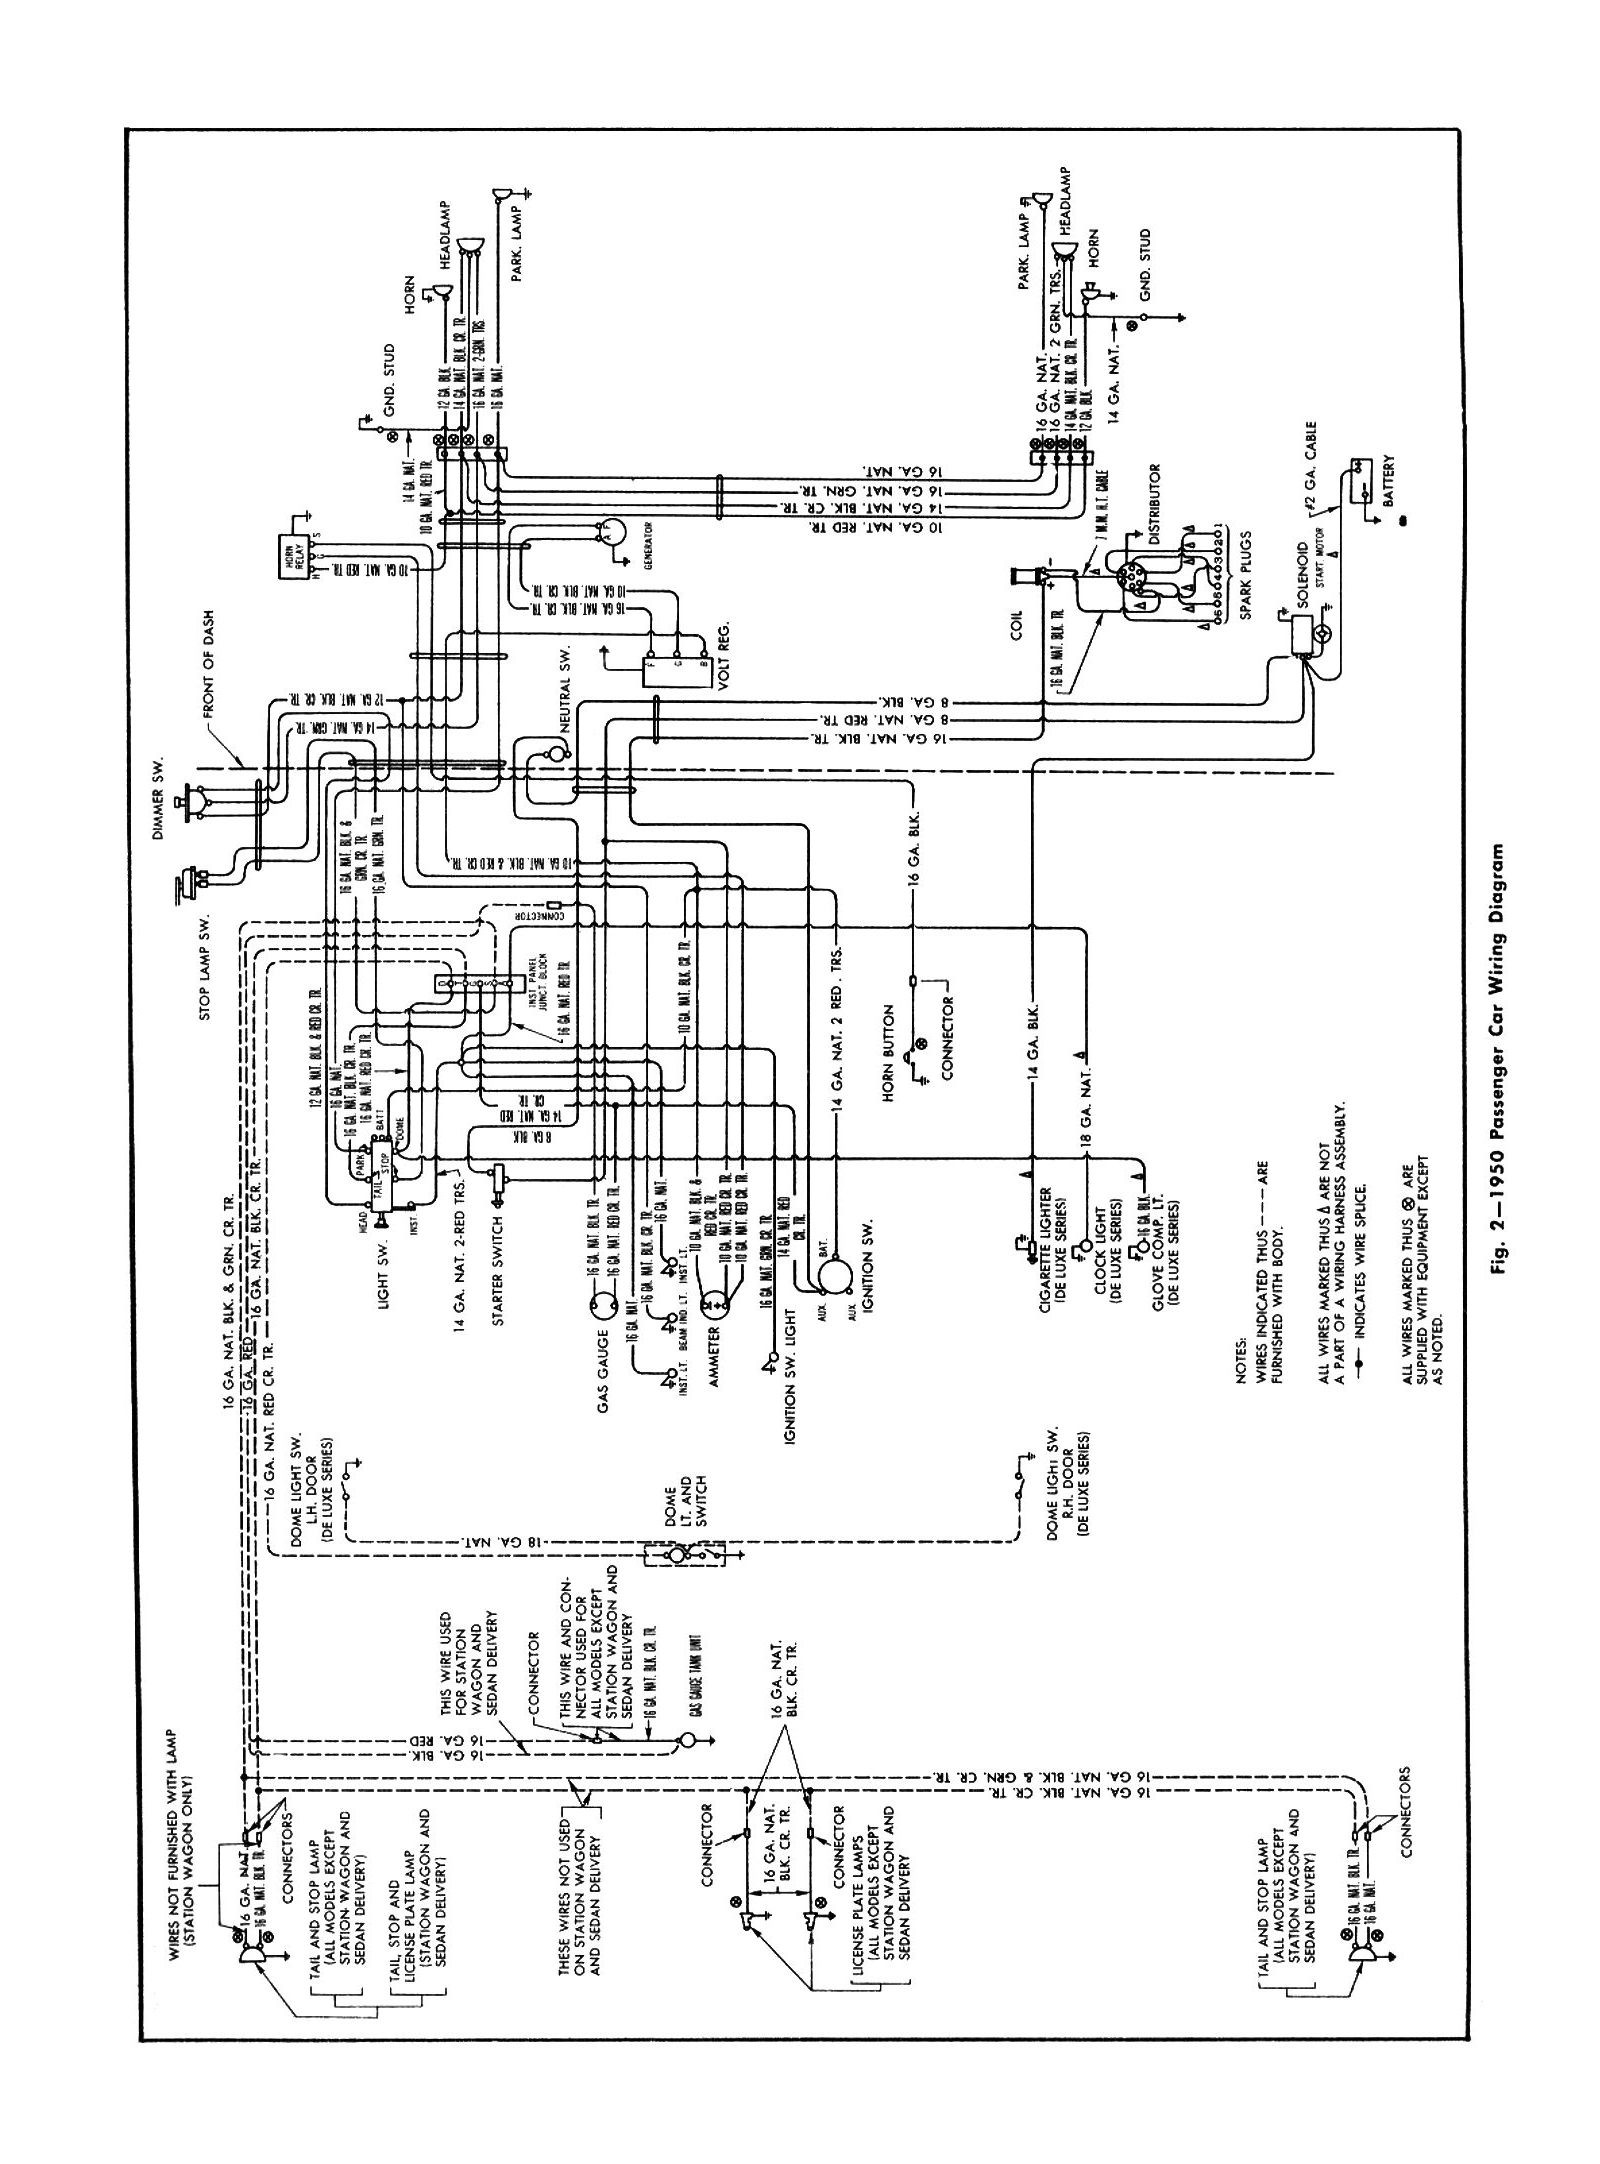 Wiring Diagram For 69 Chevy Truck